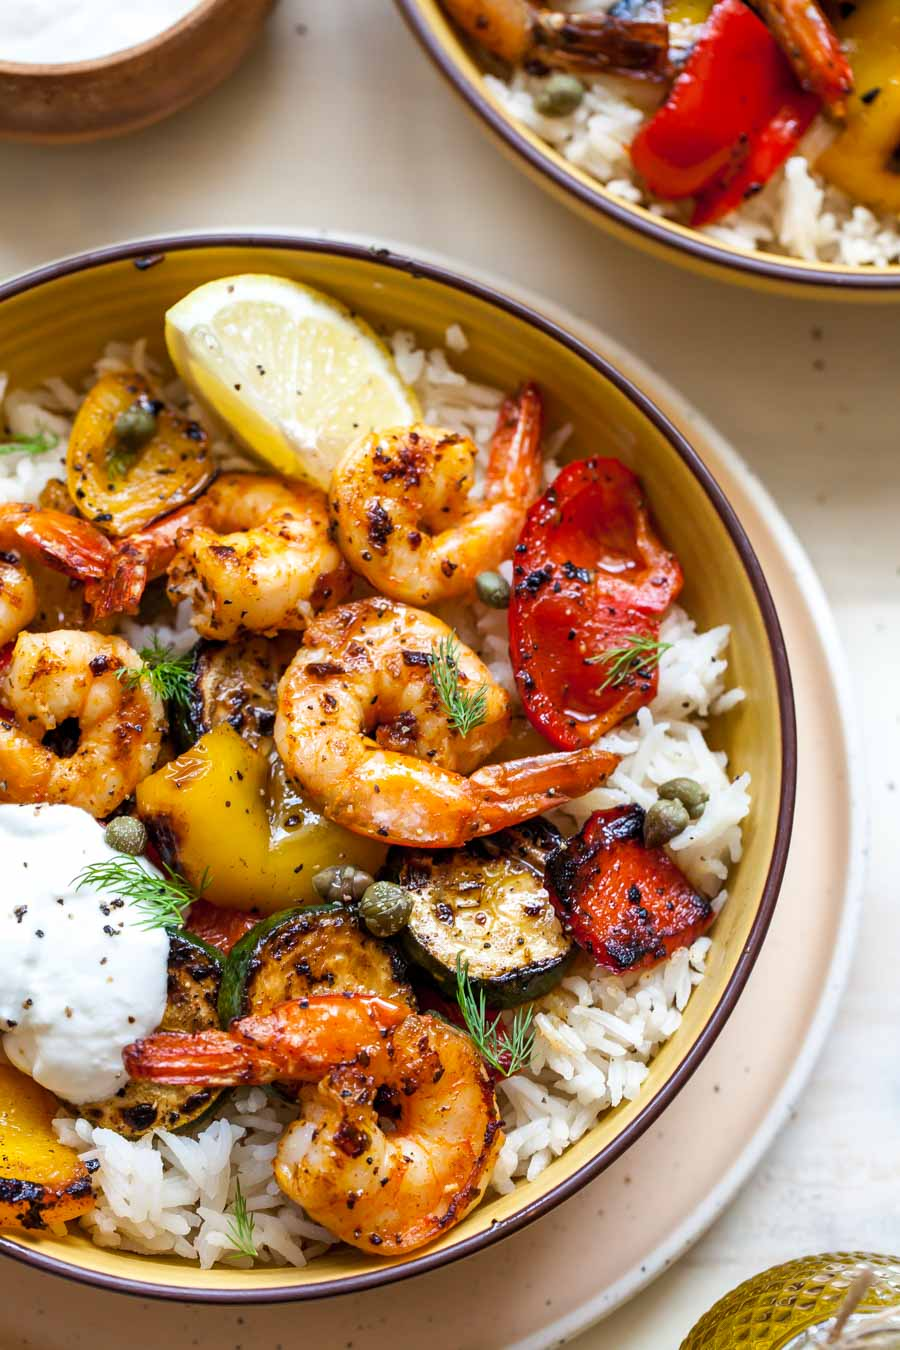 Shrimp, peppers, and rice in a yellow bowl